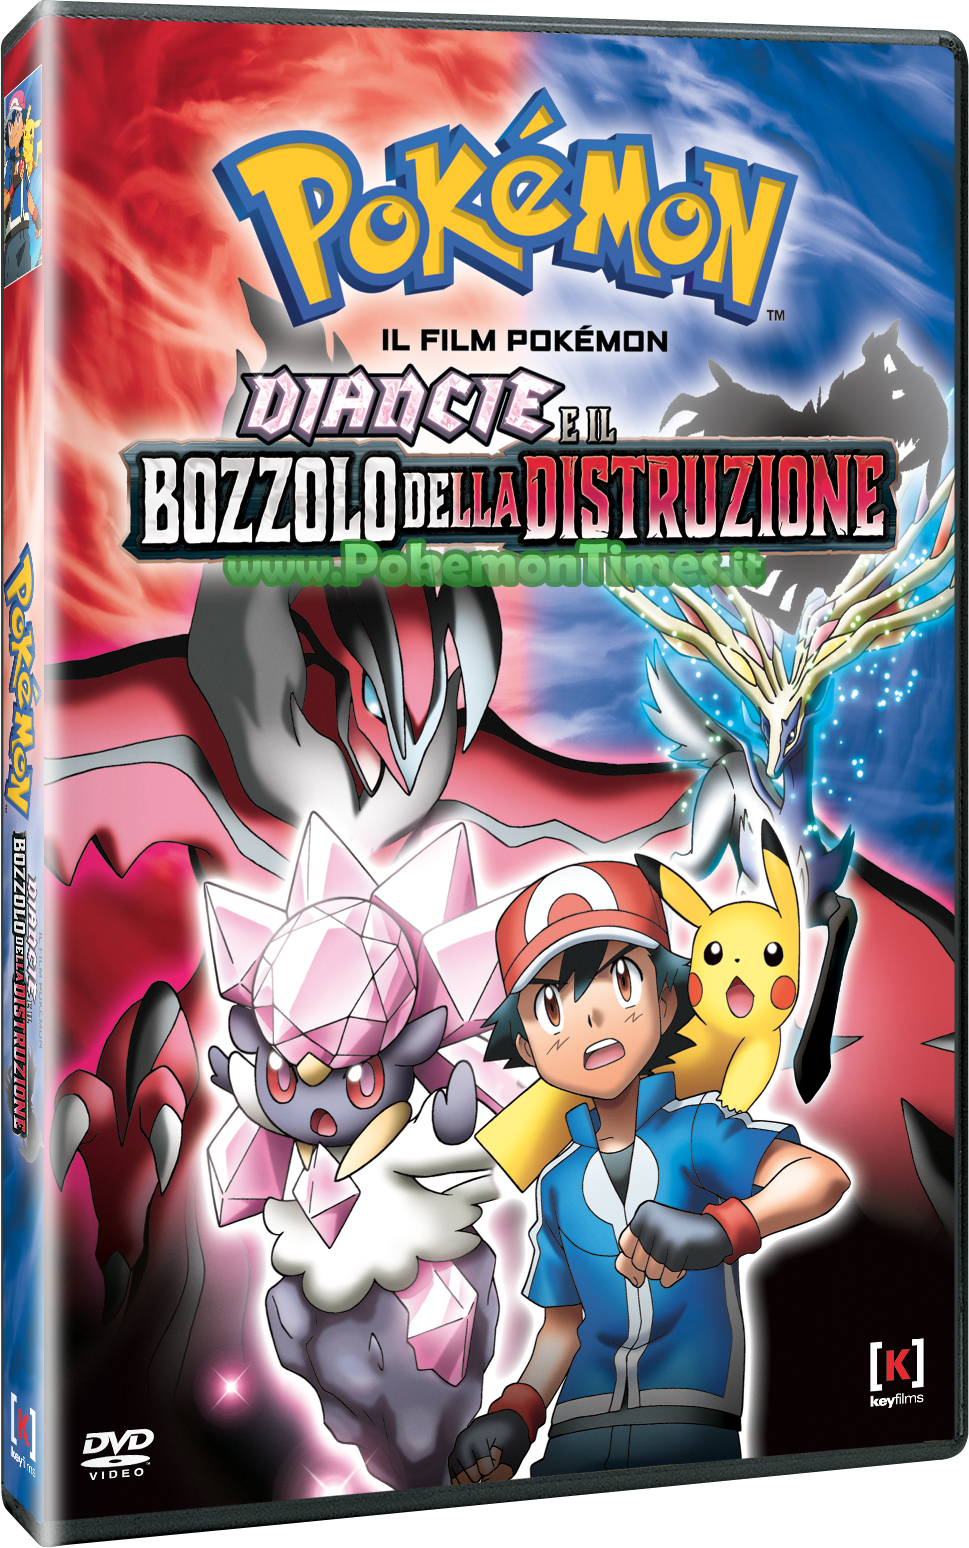 pokemon_diancie_bozzolo_distruzione_pack_dvd_pokemontimes-it